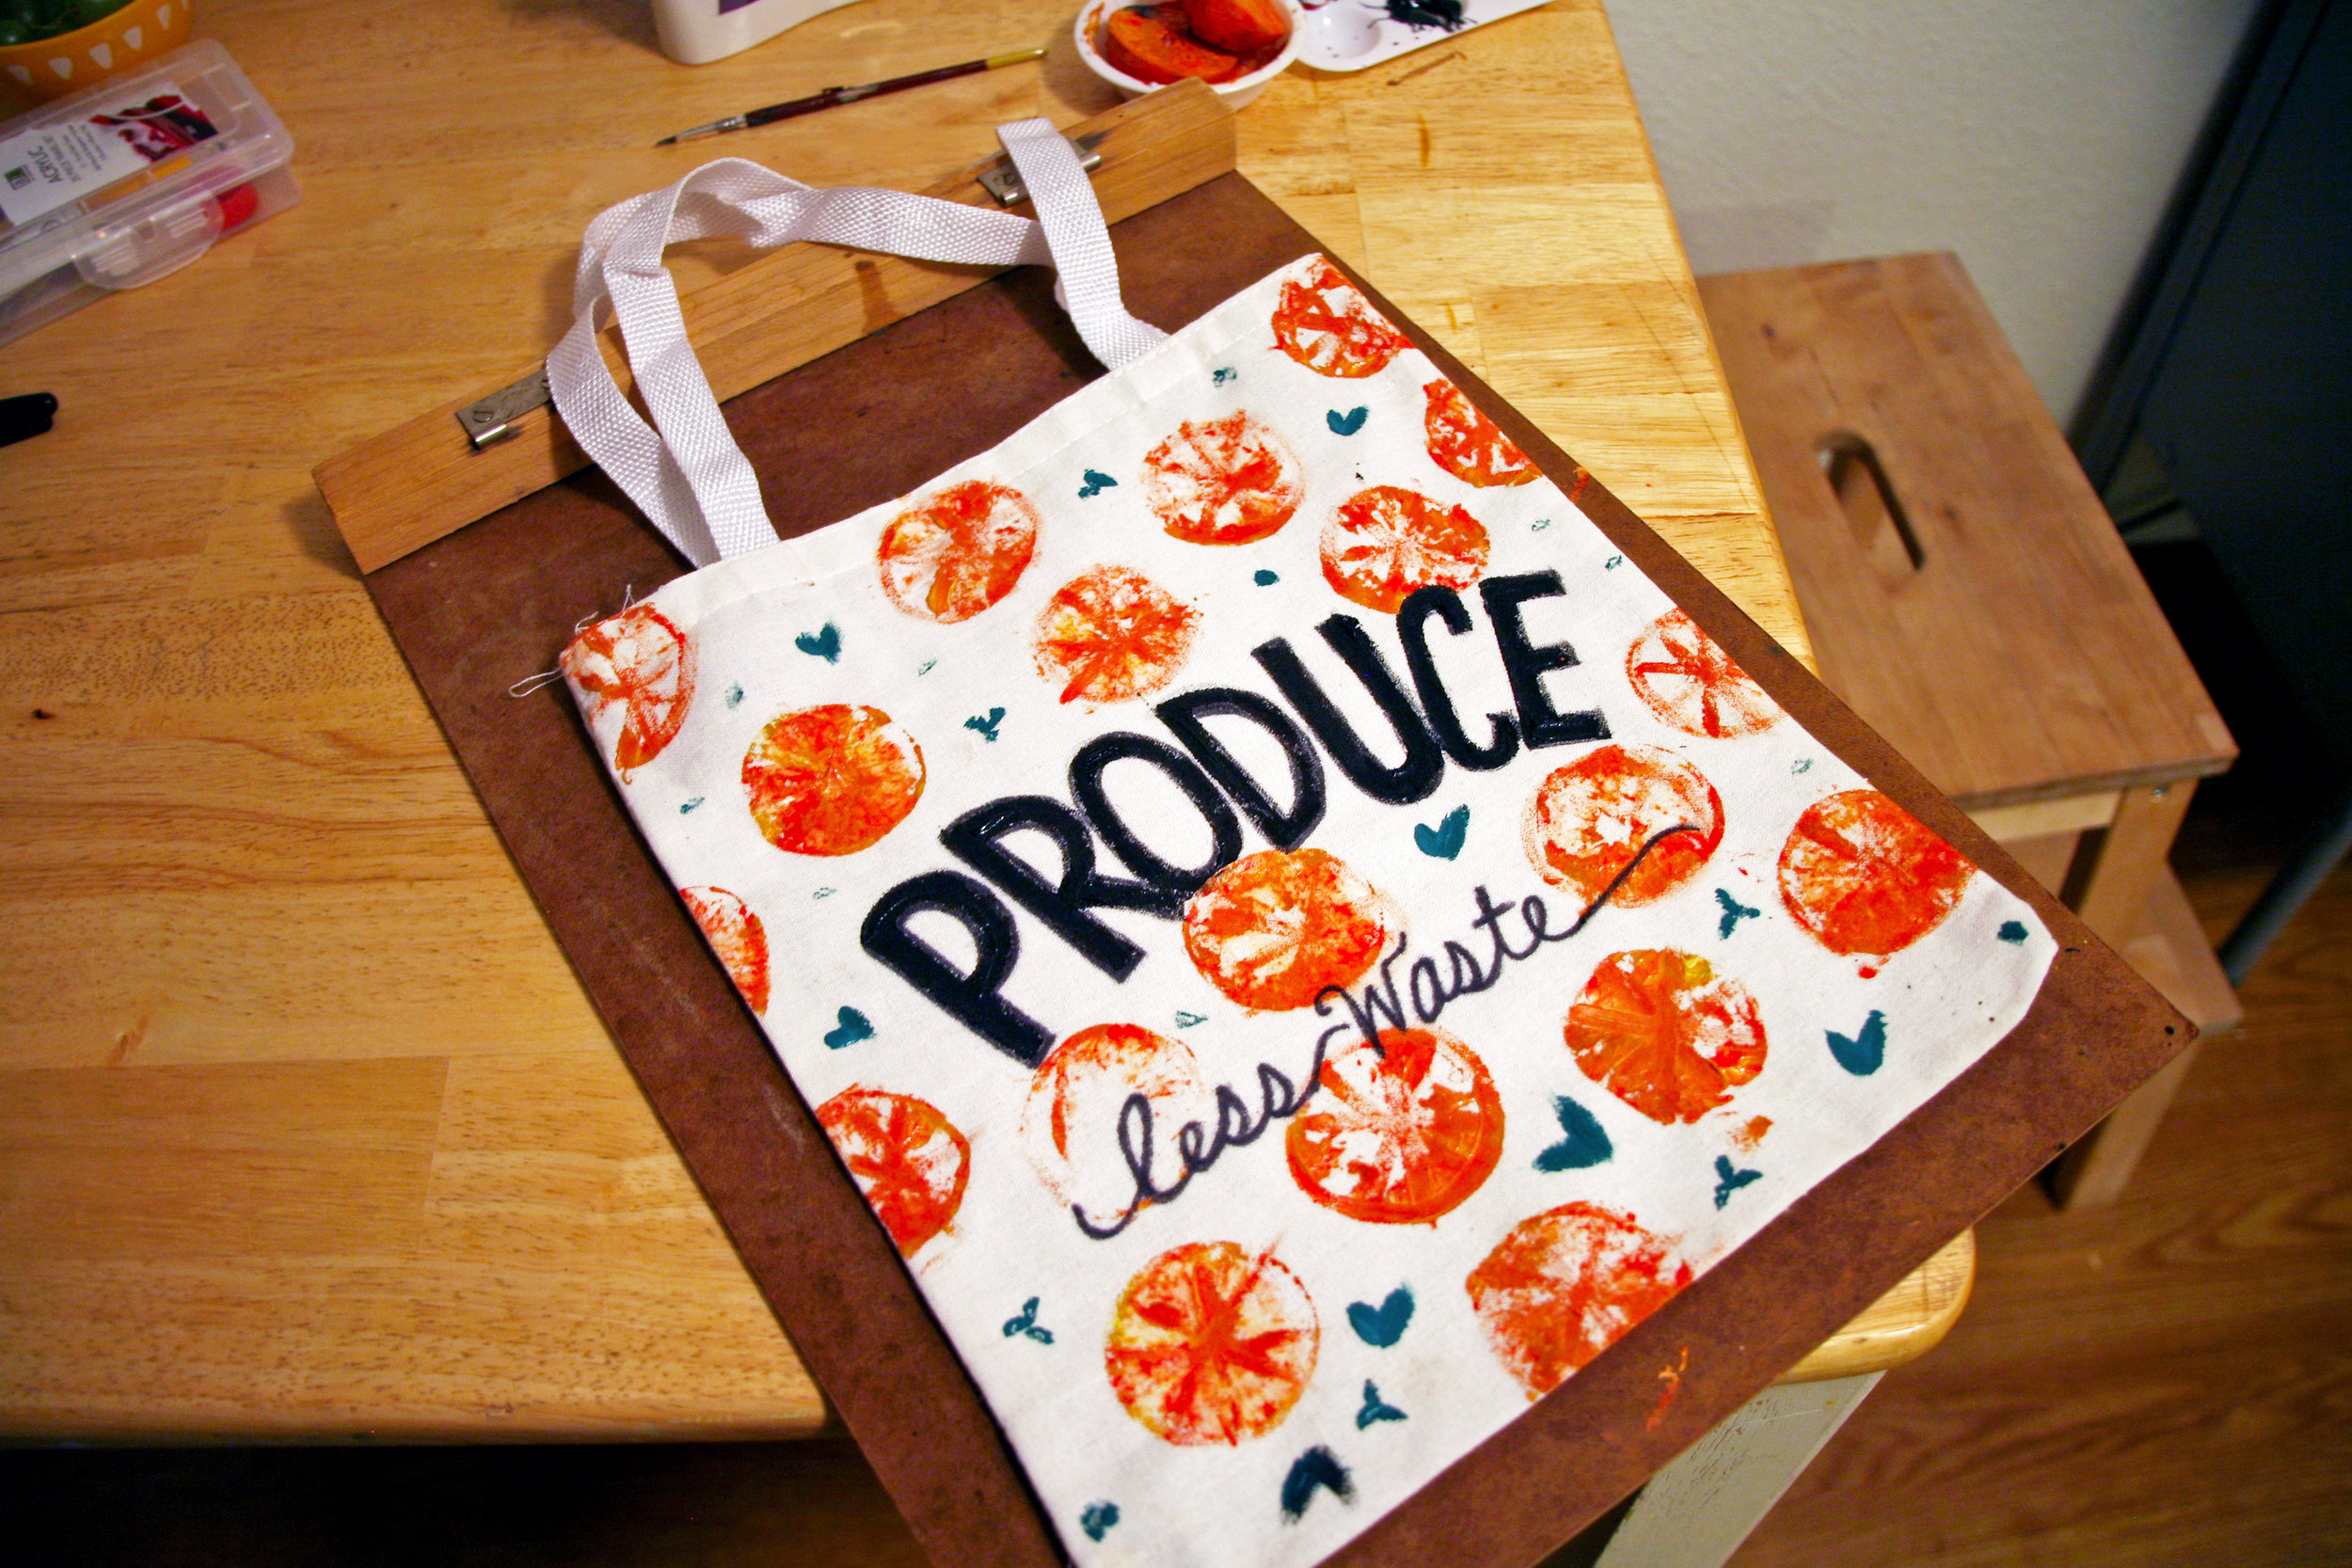 DIY produce bag is a work in progress. I'm also working on designs for full sized bags and bulk bags too!